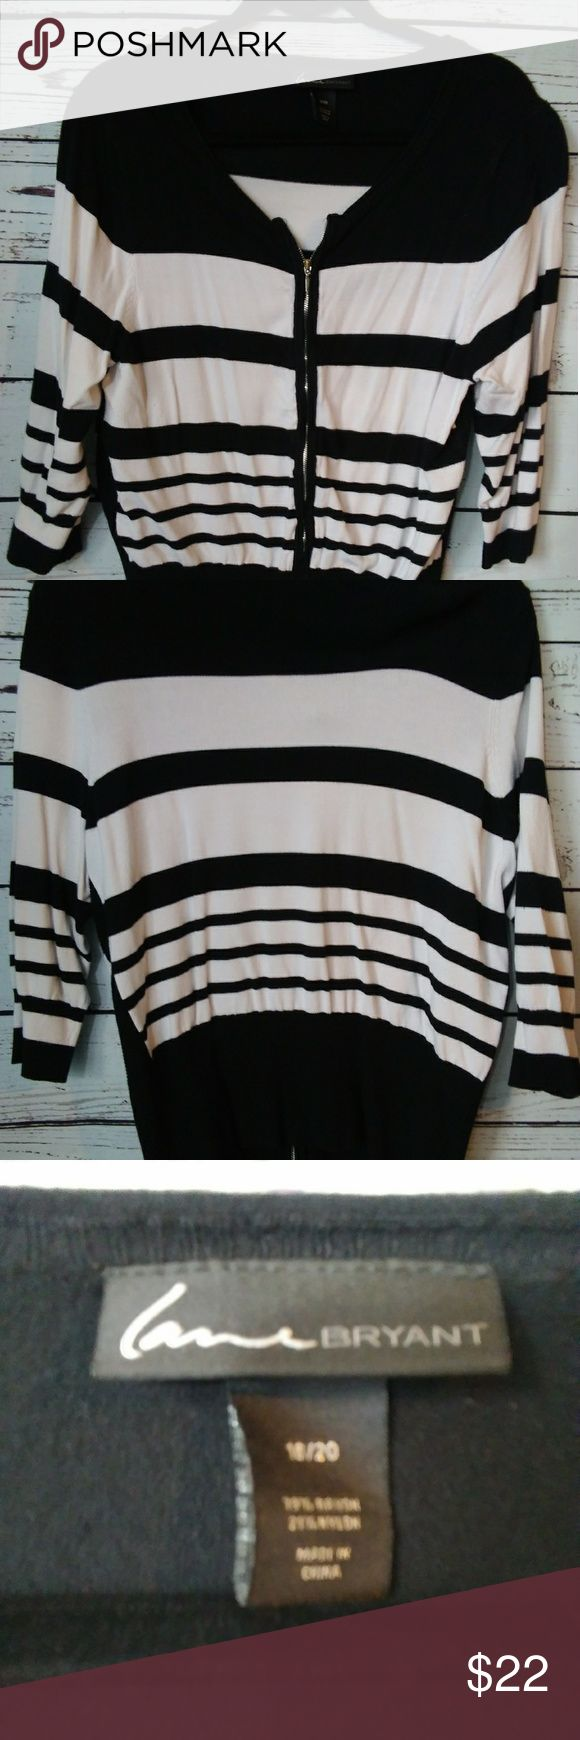 Lane Bryant black and white  sweater size 18/20 Lane Bryant black and white sweater with zipper on front. This is in great condition. Size 18/20 mid level sleeves.  Length 20 inch Shoulders 19 Sleeves 18 inch Lane Bryant Sweaters Cardigans